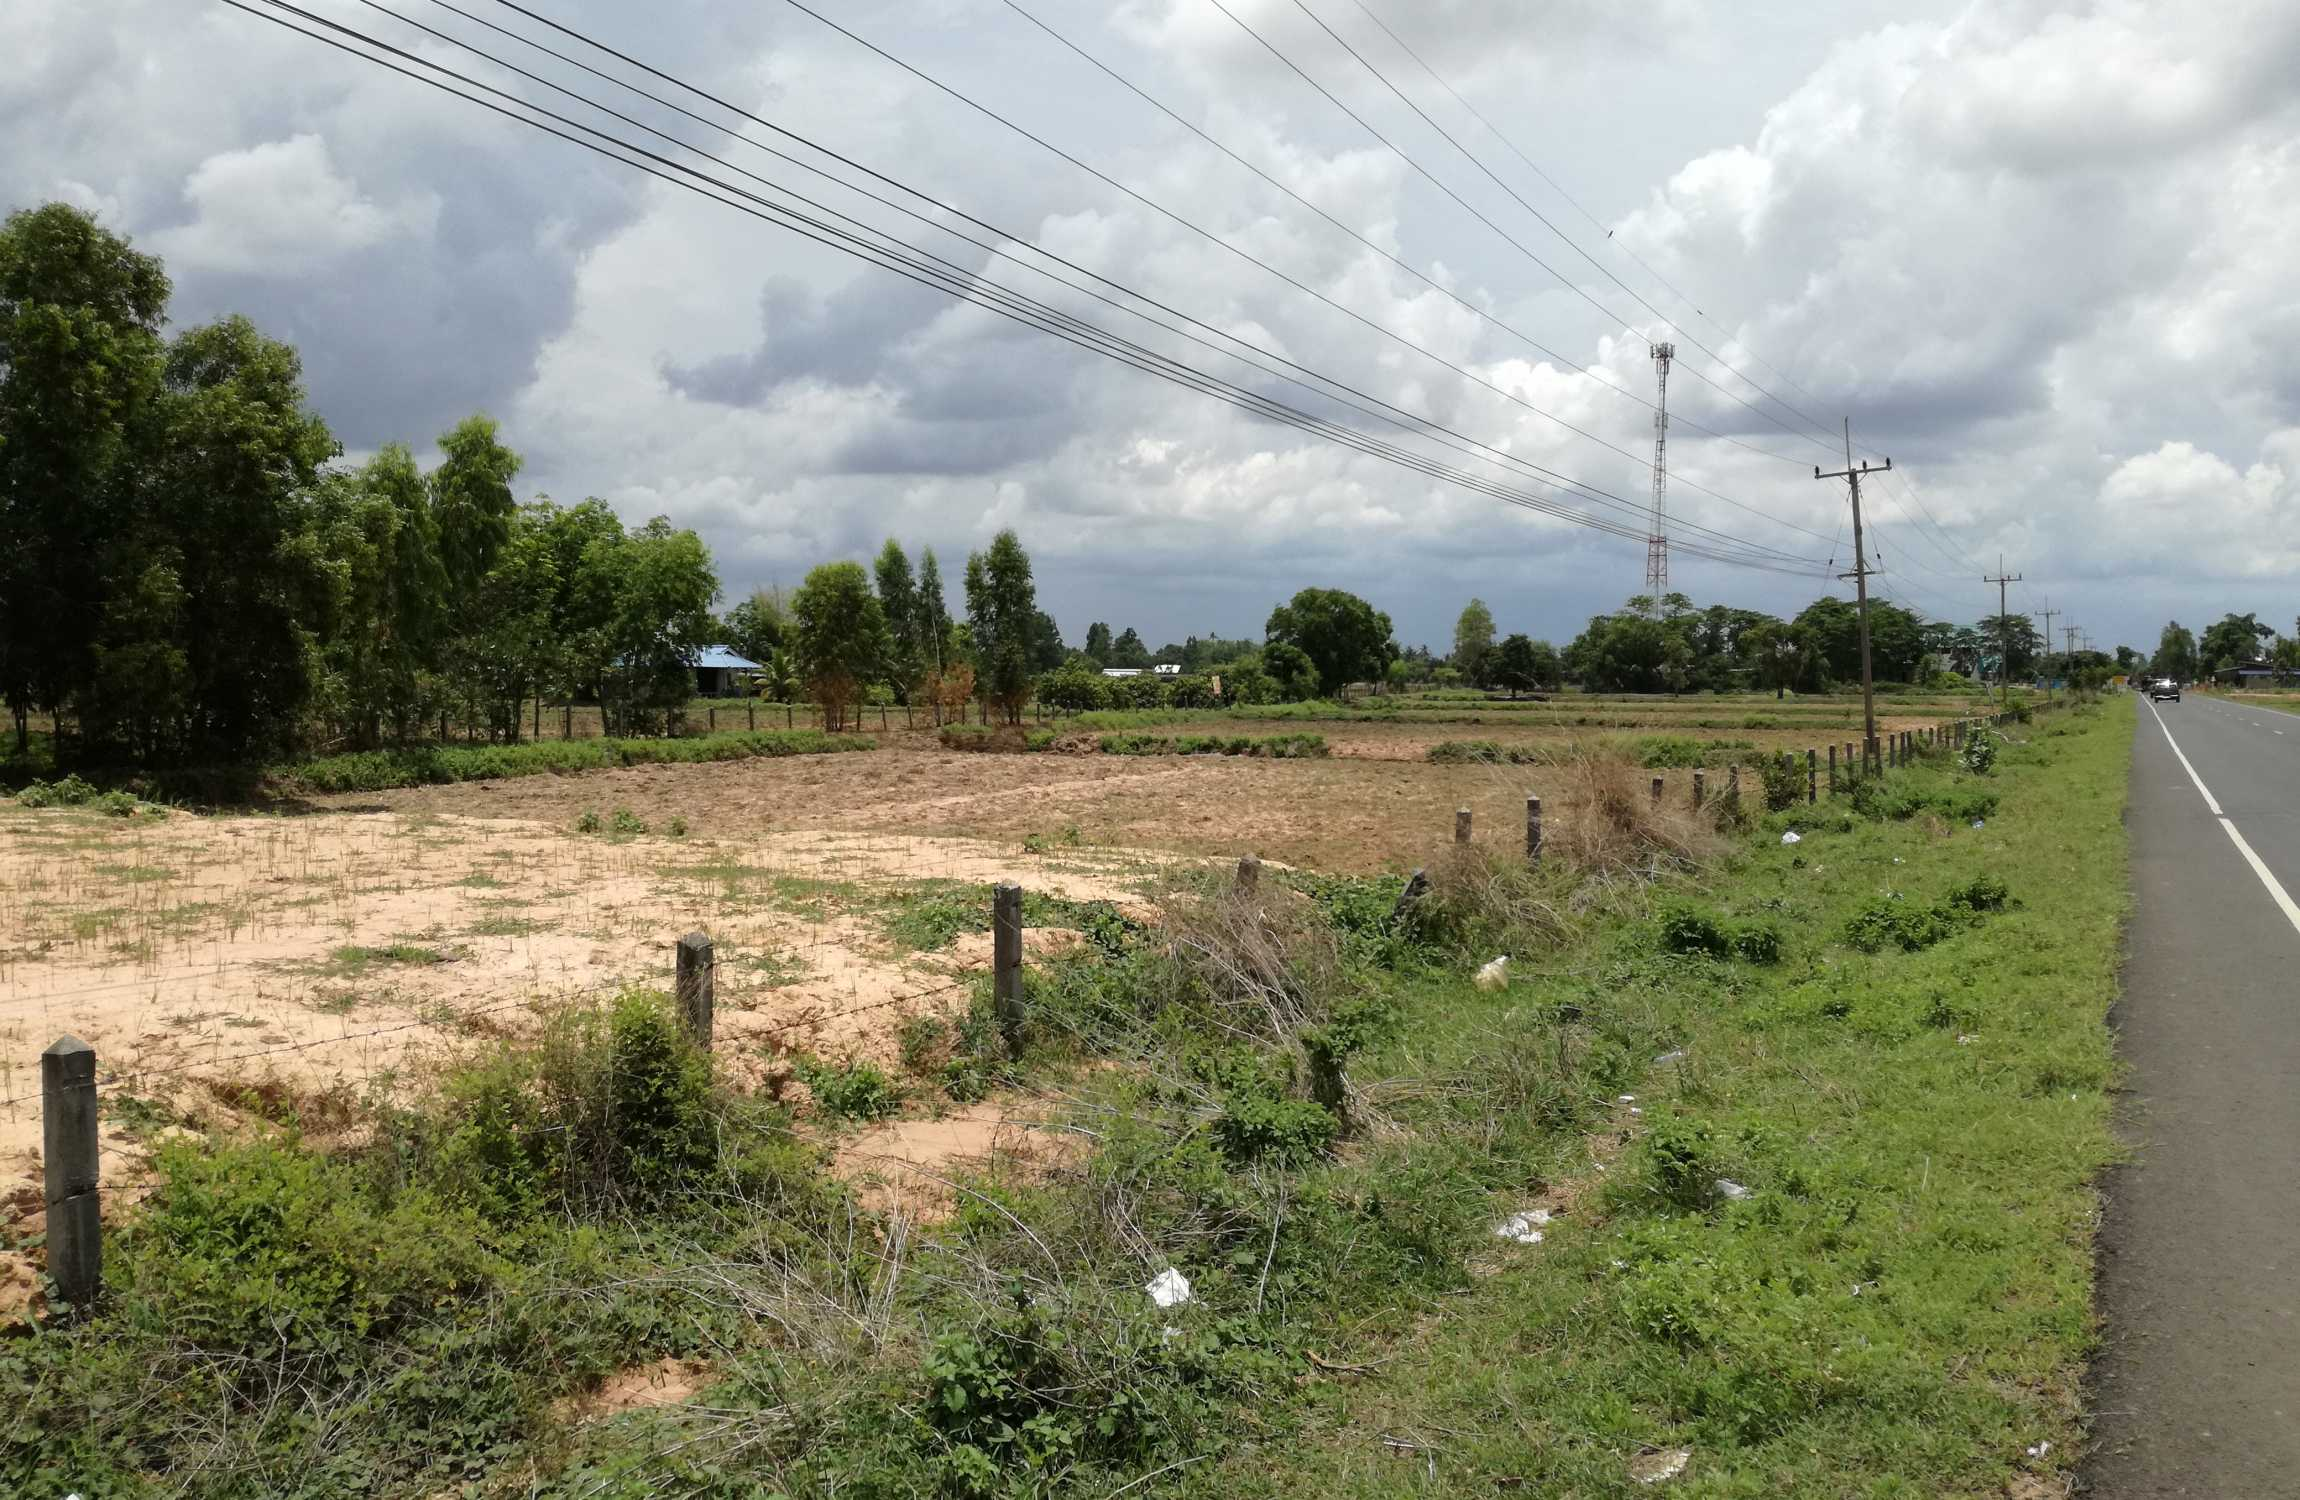 An Excellent Opportunity To Own A Well Situated Parcel